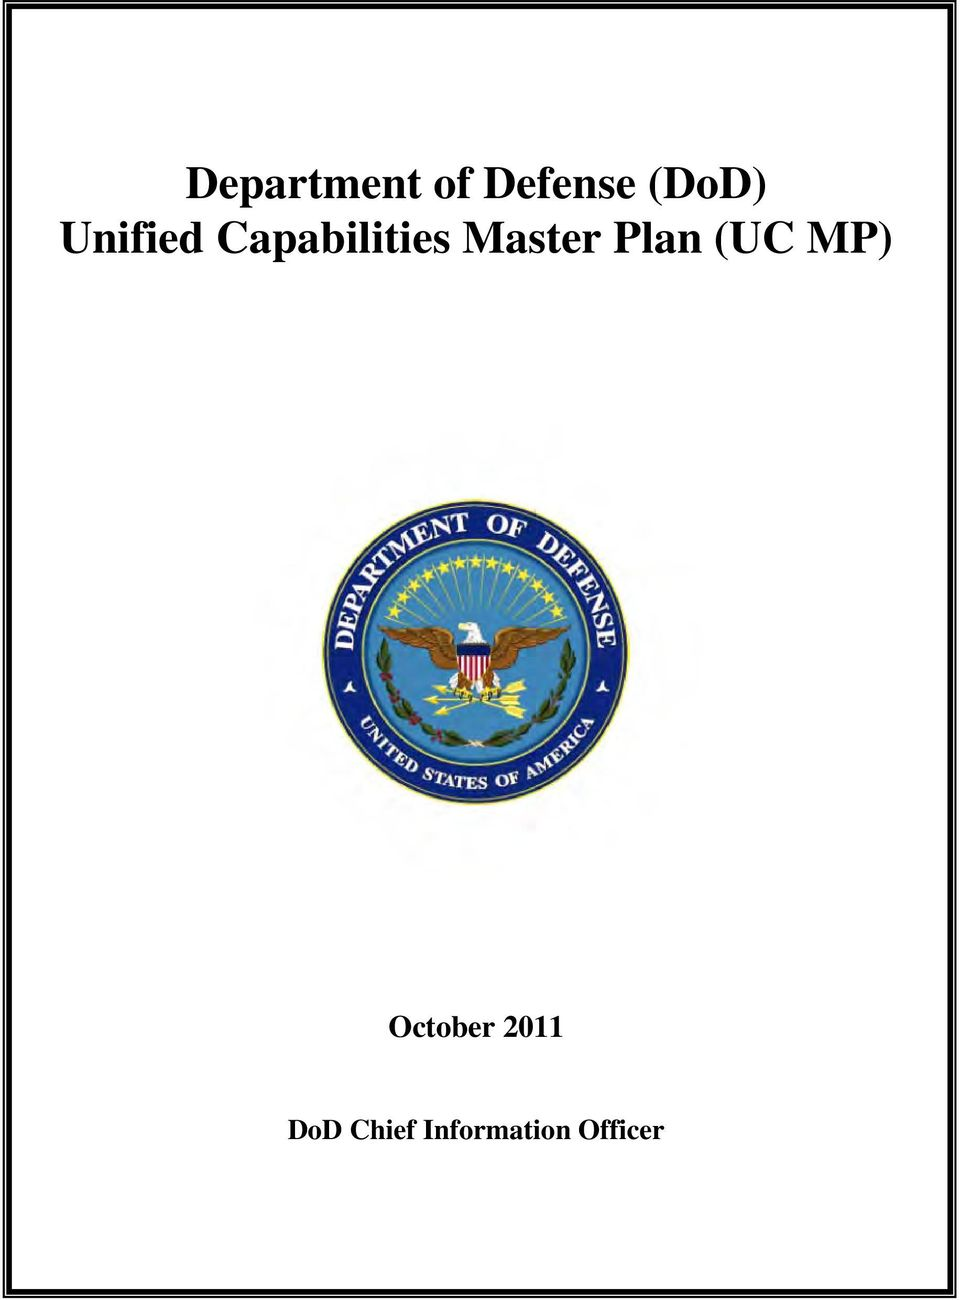 Plan (UC MP) October 2011